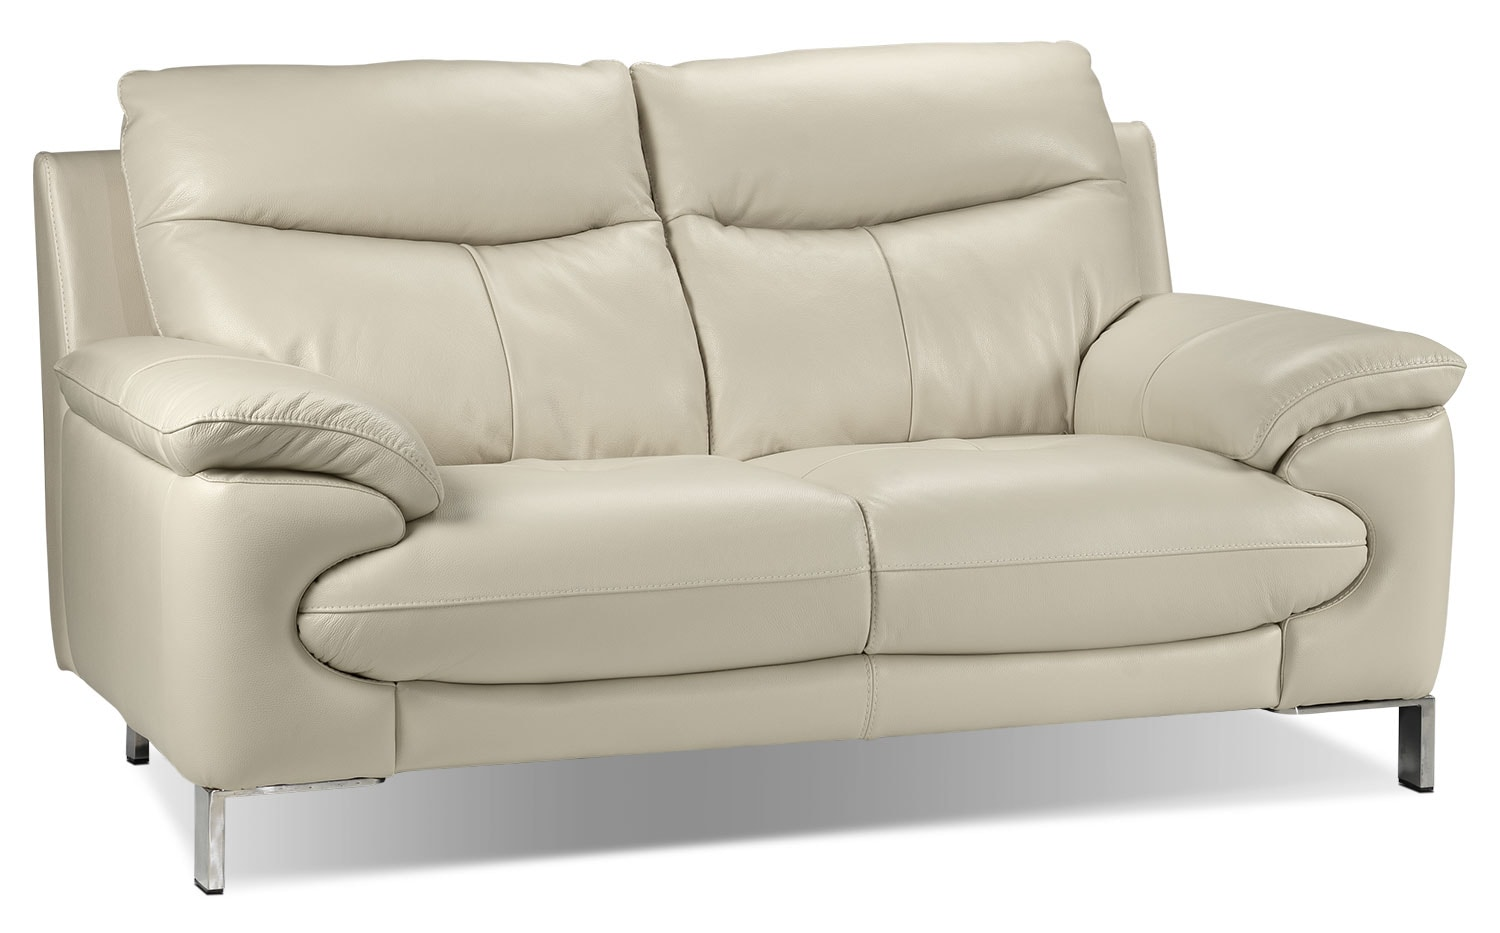 Anika Loveseat - Bisque